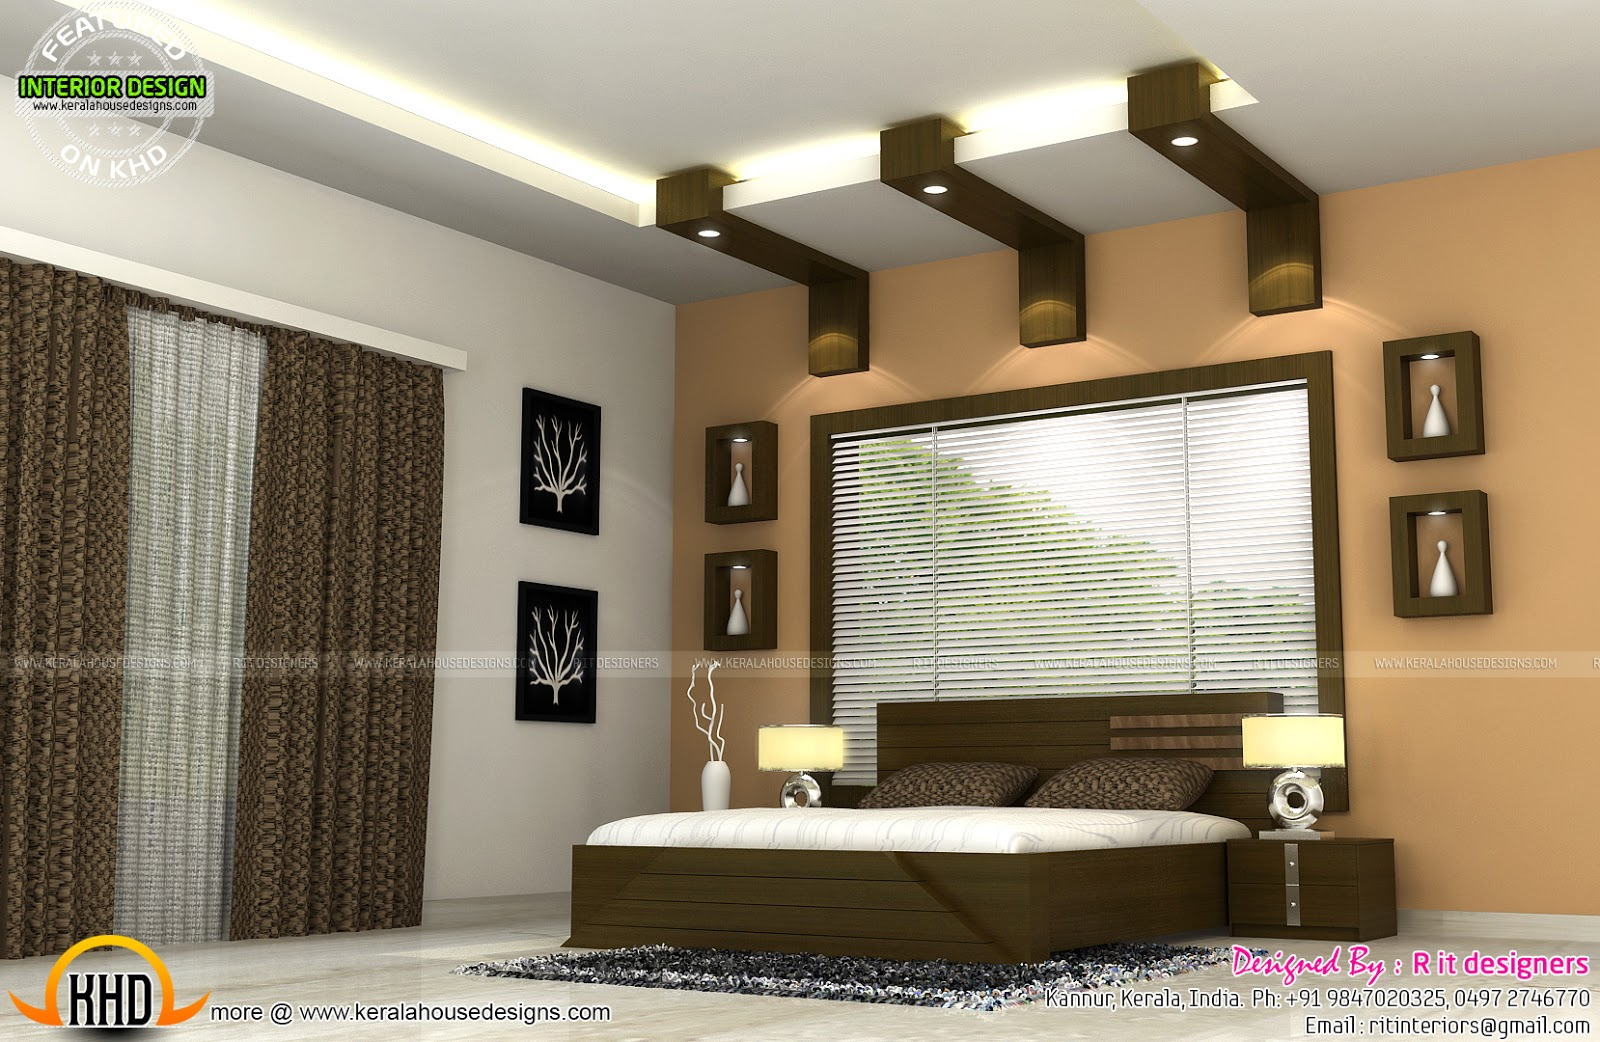 Interiors of bedrooms and kitchen kerala home design and for Home interior design images